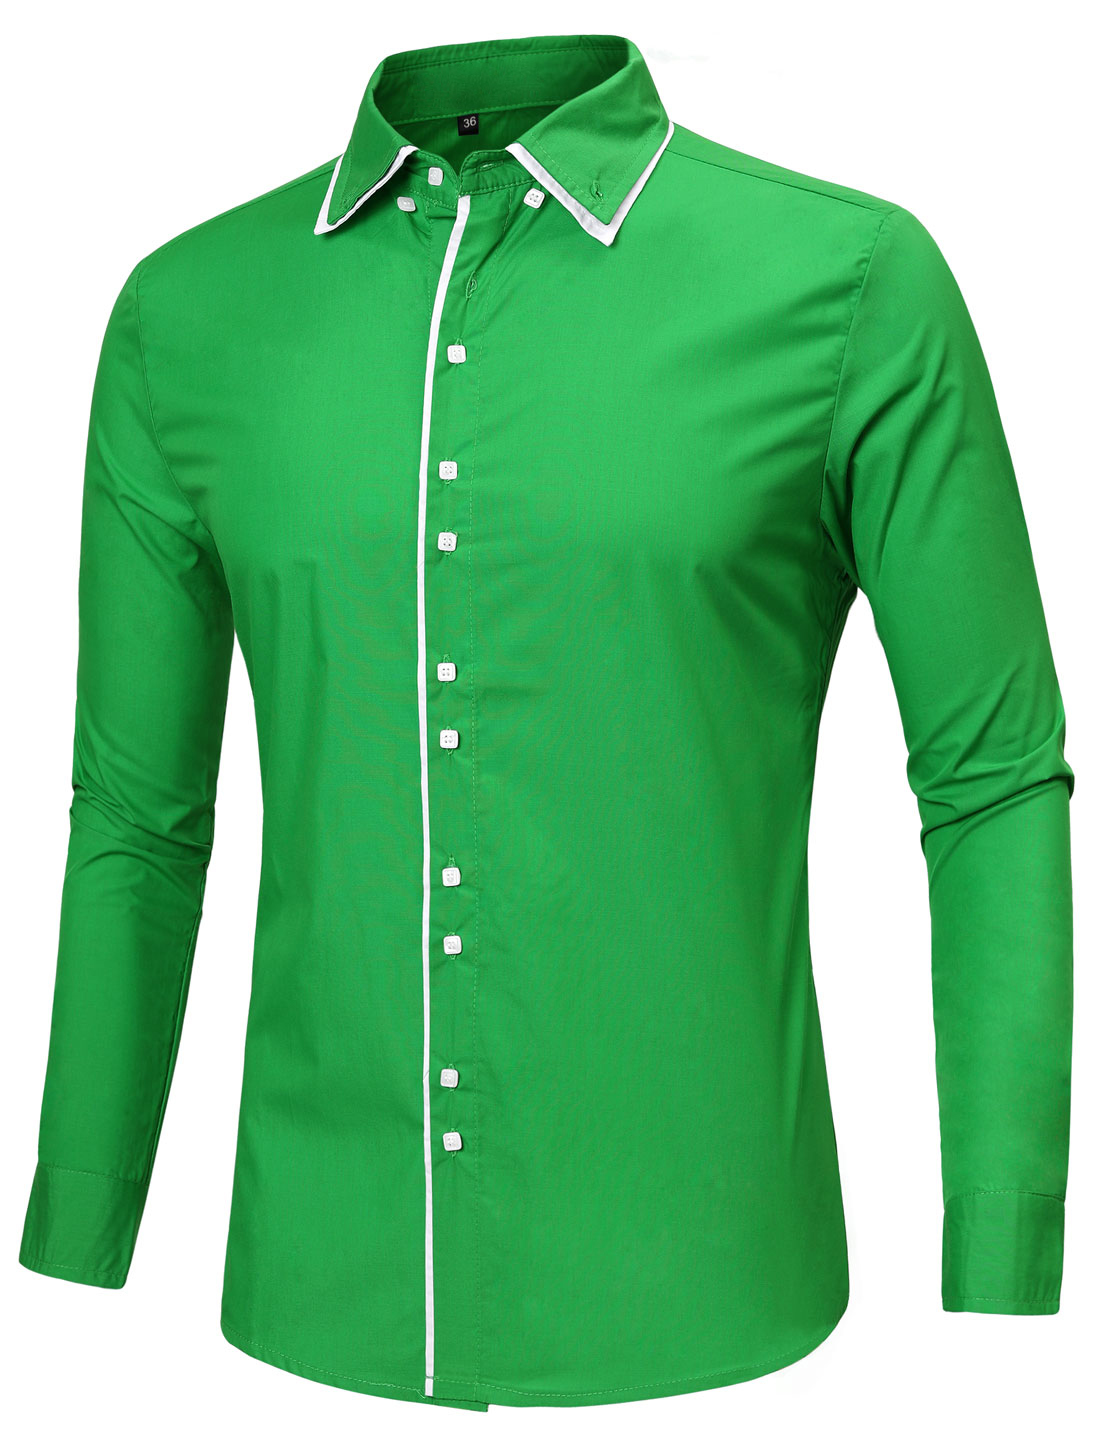 Men Contrast Trim Slim Fit Long Sleeve Button Down Formal Dress Shirt Bright Green M